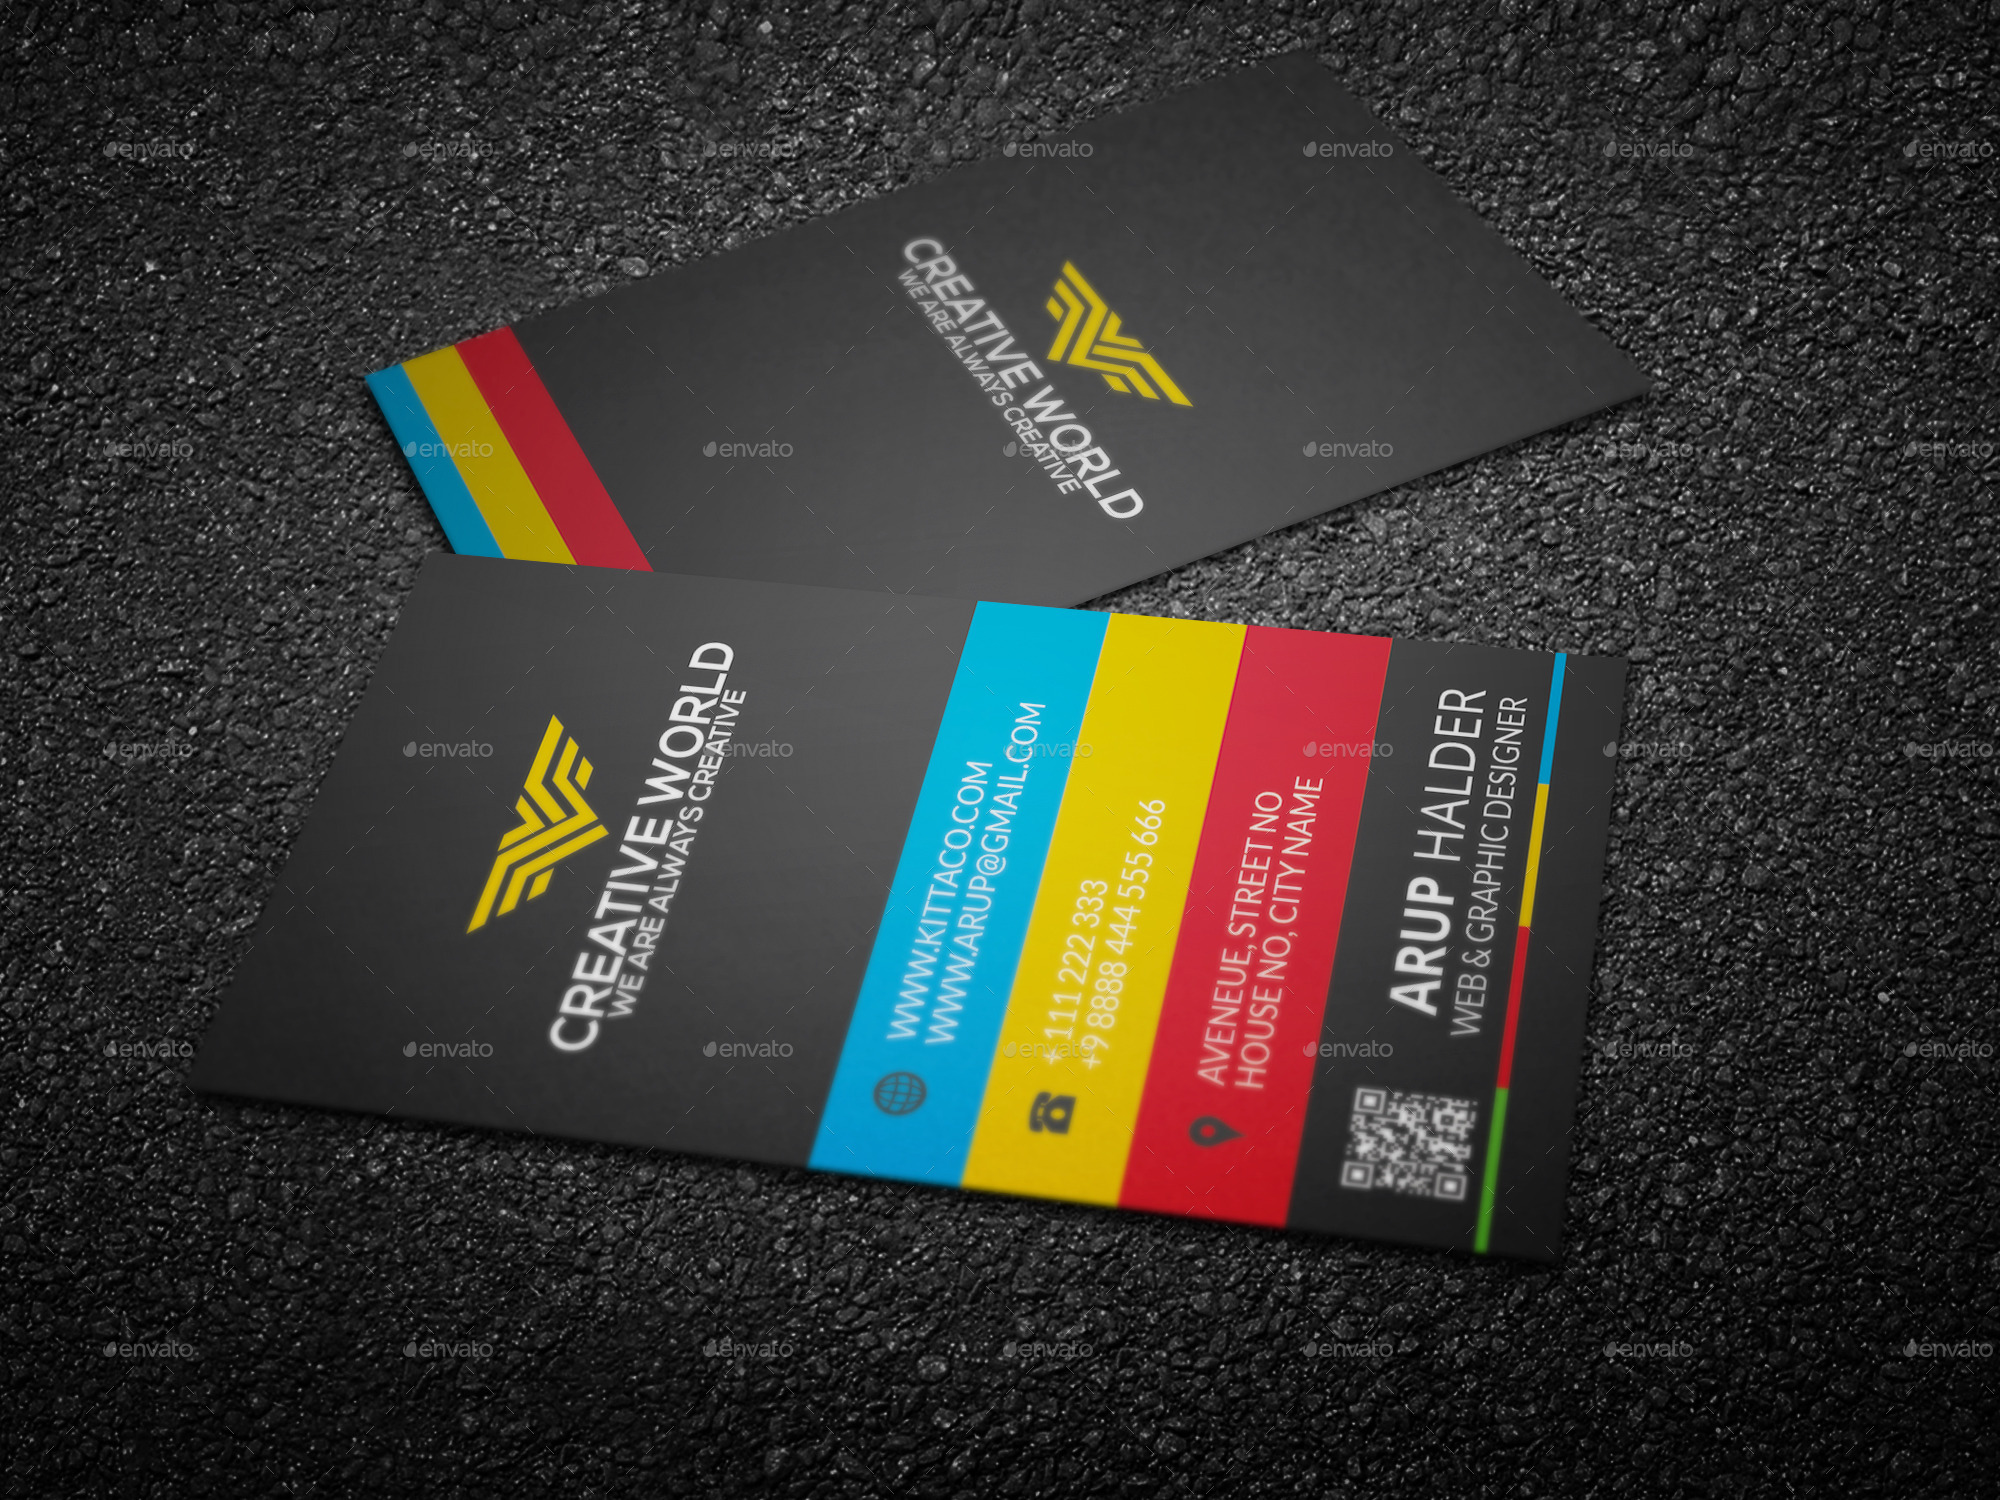 Colorful business card template by kittaco graphicriver colorful business card template business cards print templates bcmockup1g bcmockup2g bcmockup3g colourmoves